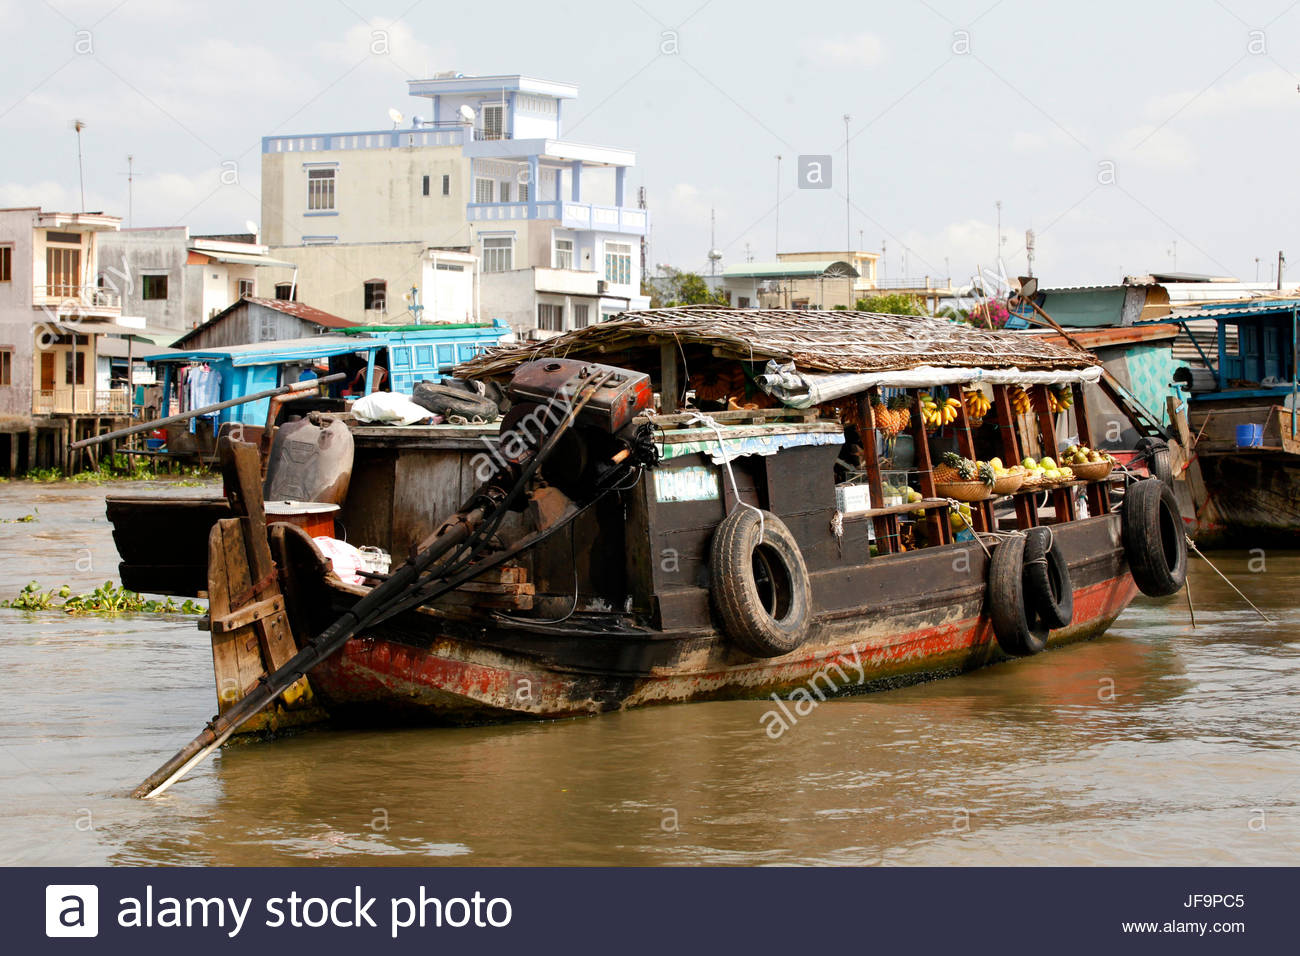 Overwater market along the Mekong River. - Stock Image